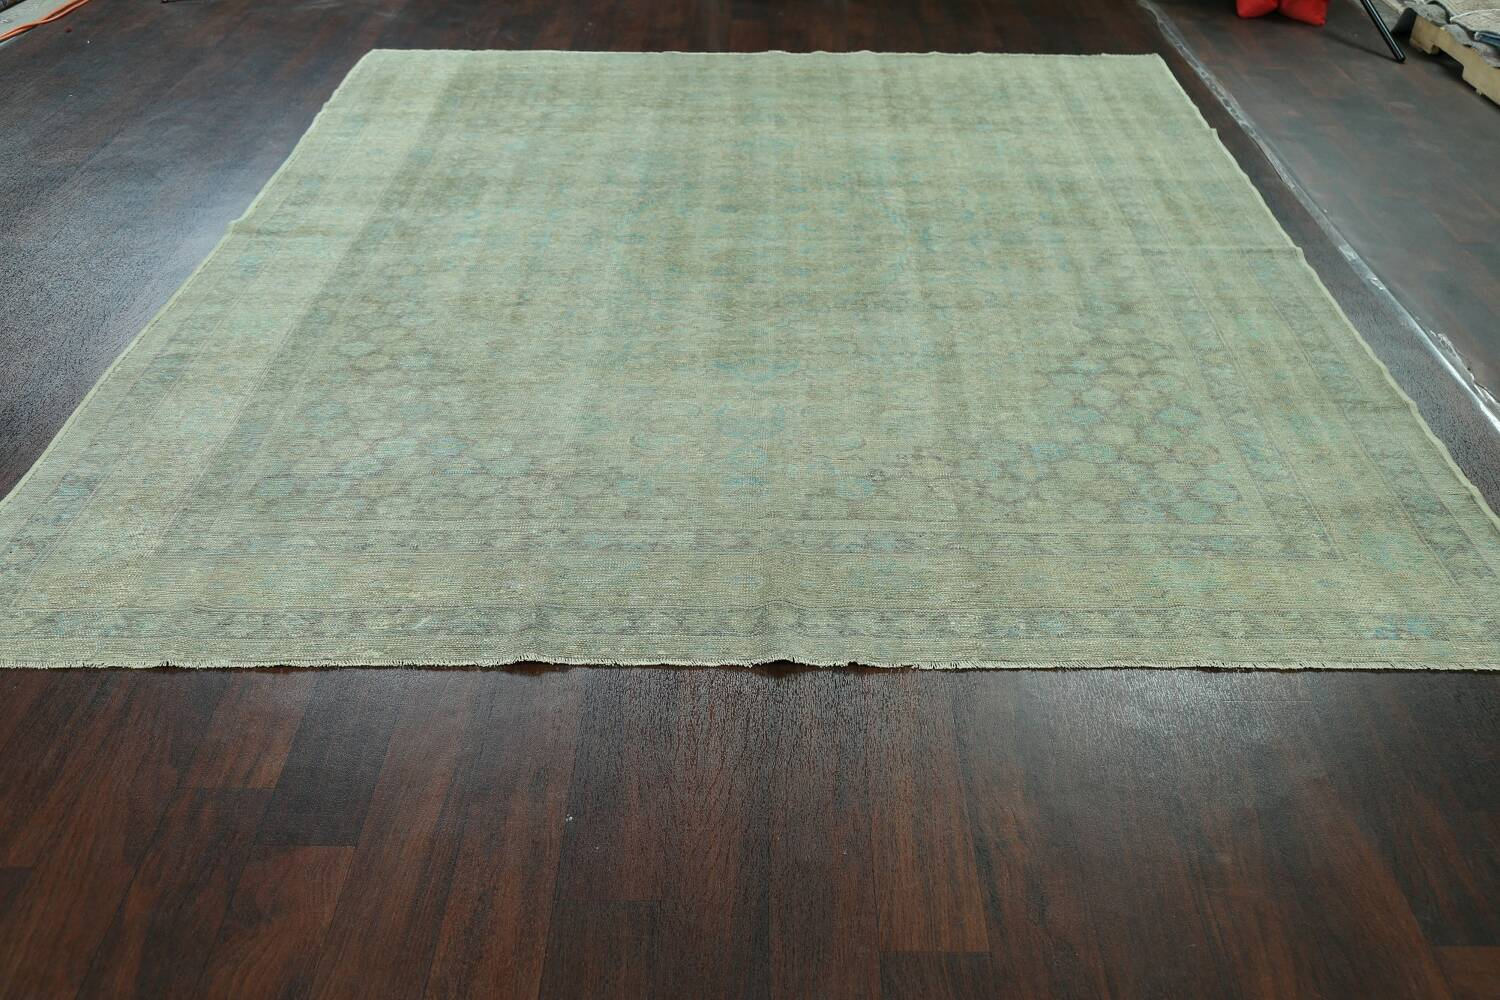 Antique 100% Vegetable Dye Sultanabad Persian Area Rug 8x9 image 17